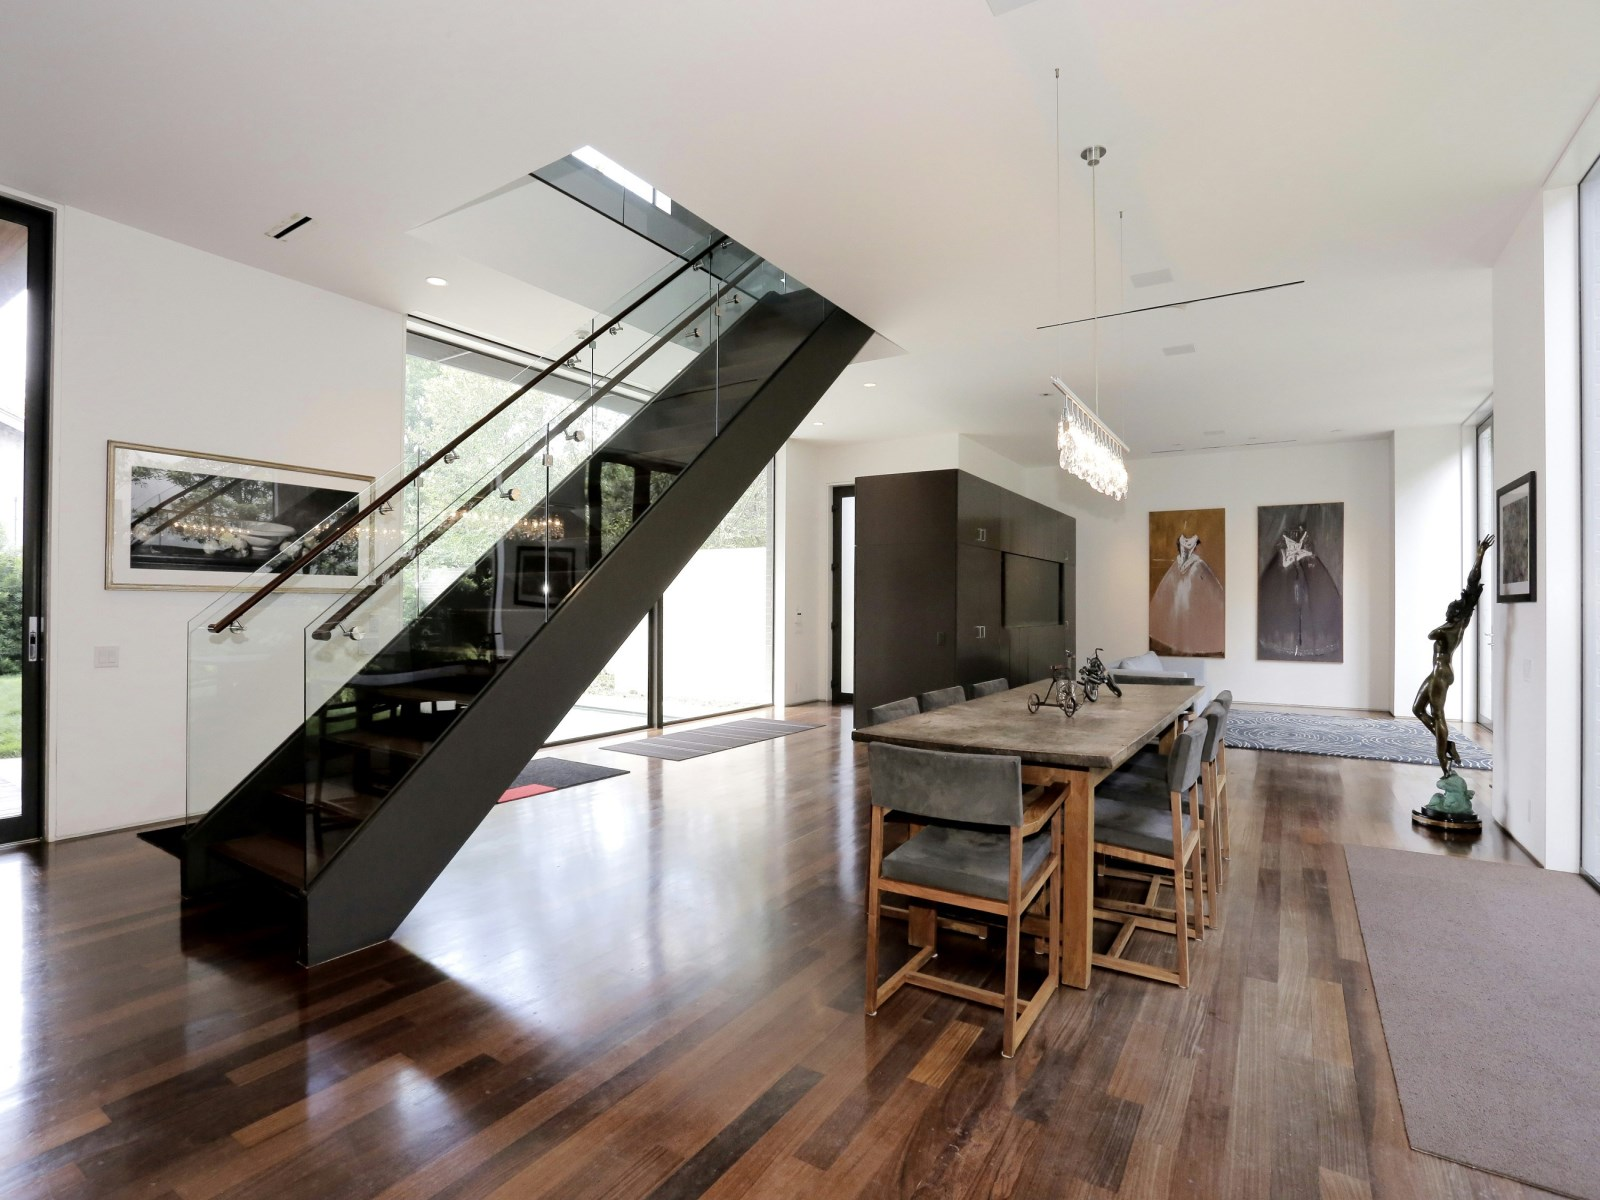 Modern Central Staircase - A home with formidable architecture and a light interior